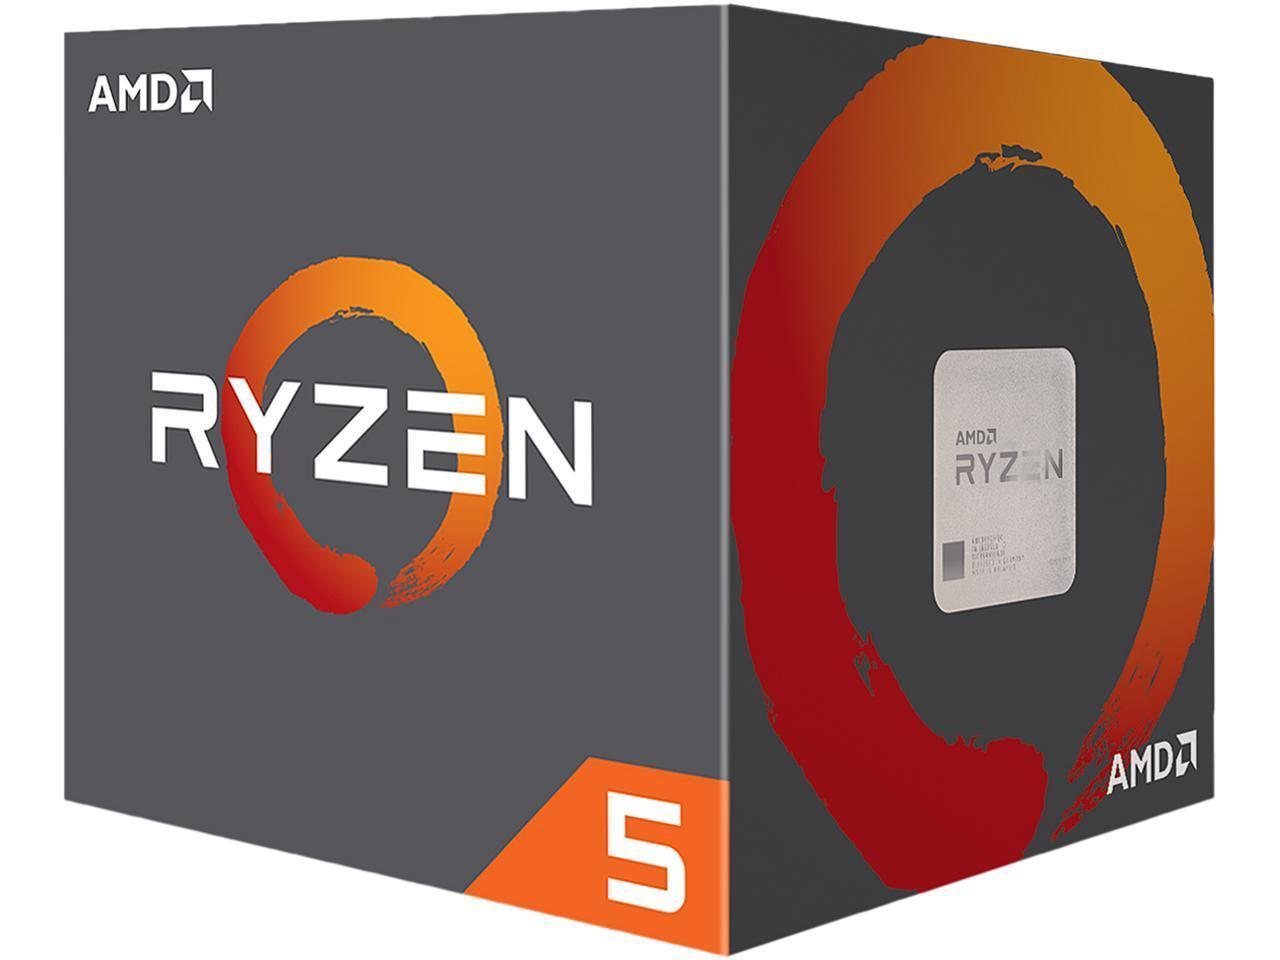 Процесор AMD RYZEN 5 2600X 6-Core 3.6 GHz (4.2 GHz Turbo) 19MB/95W/AM4/FAN